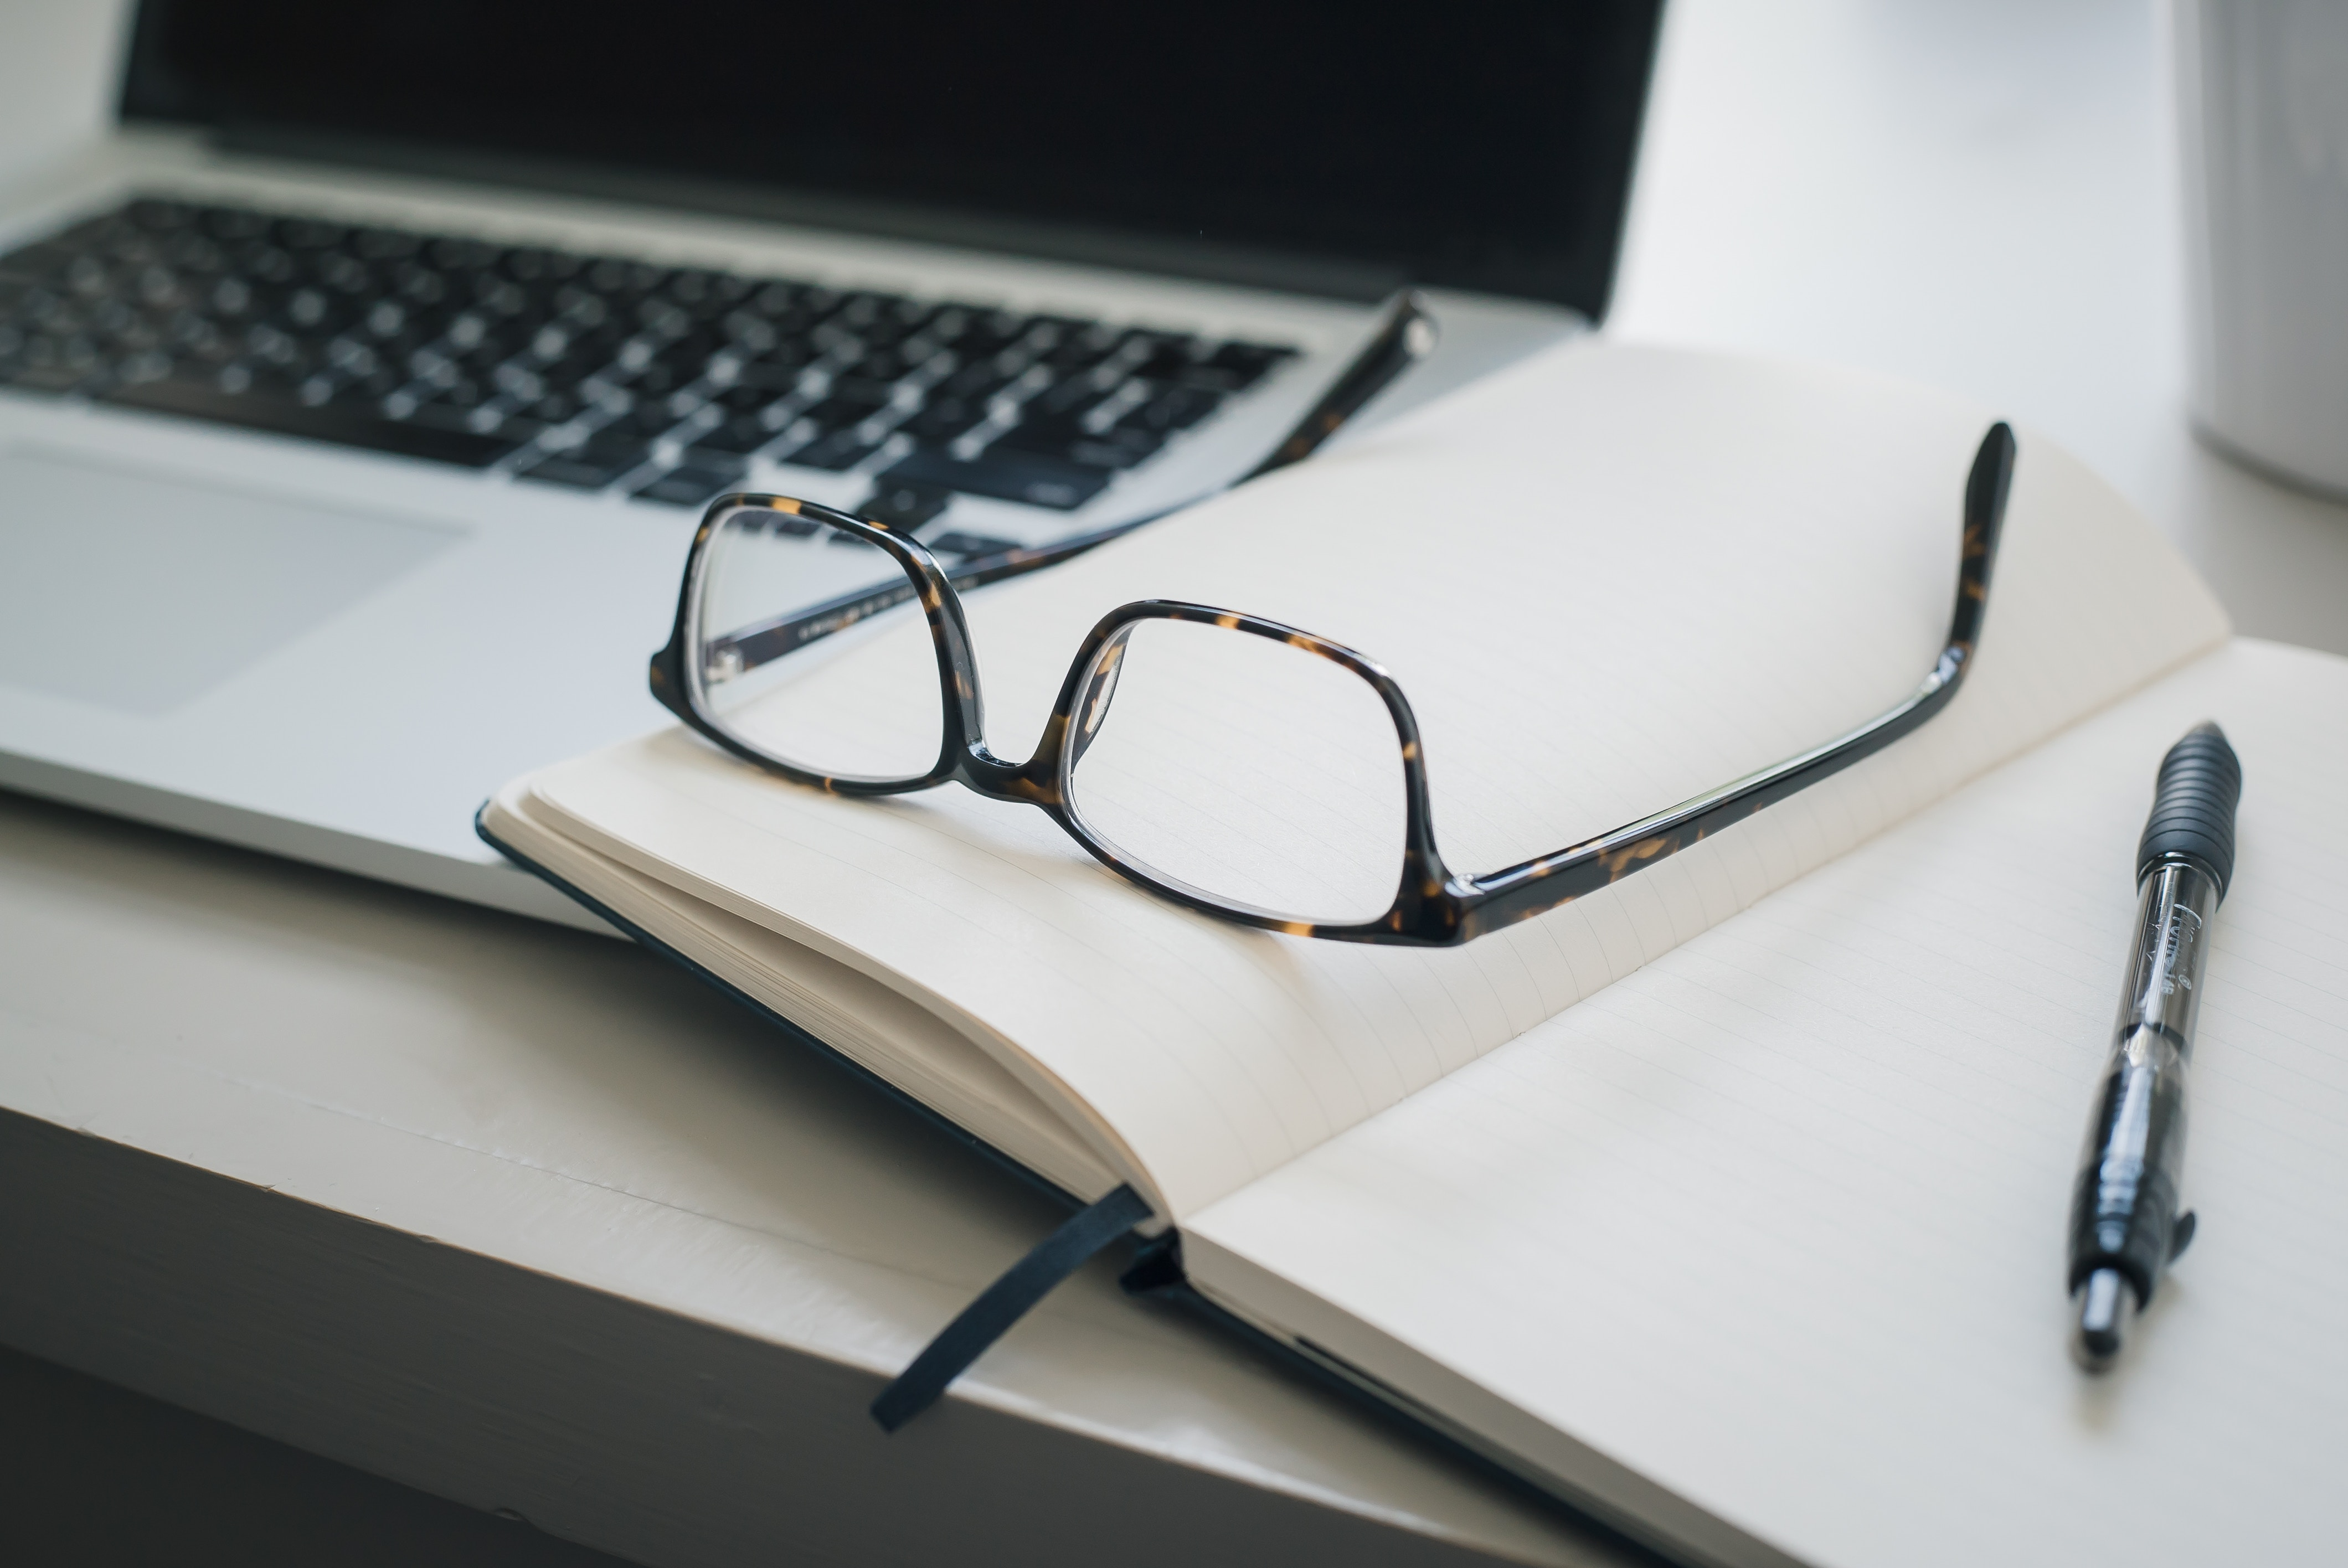 a laptop; eyeglasses; pen and notedbook on top of table